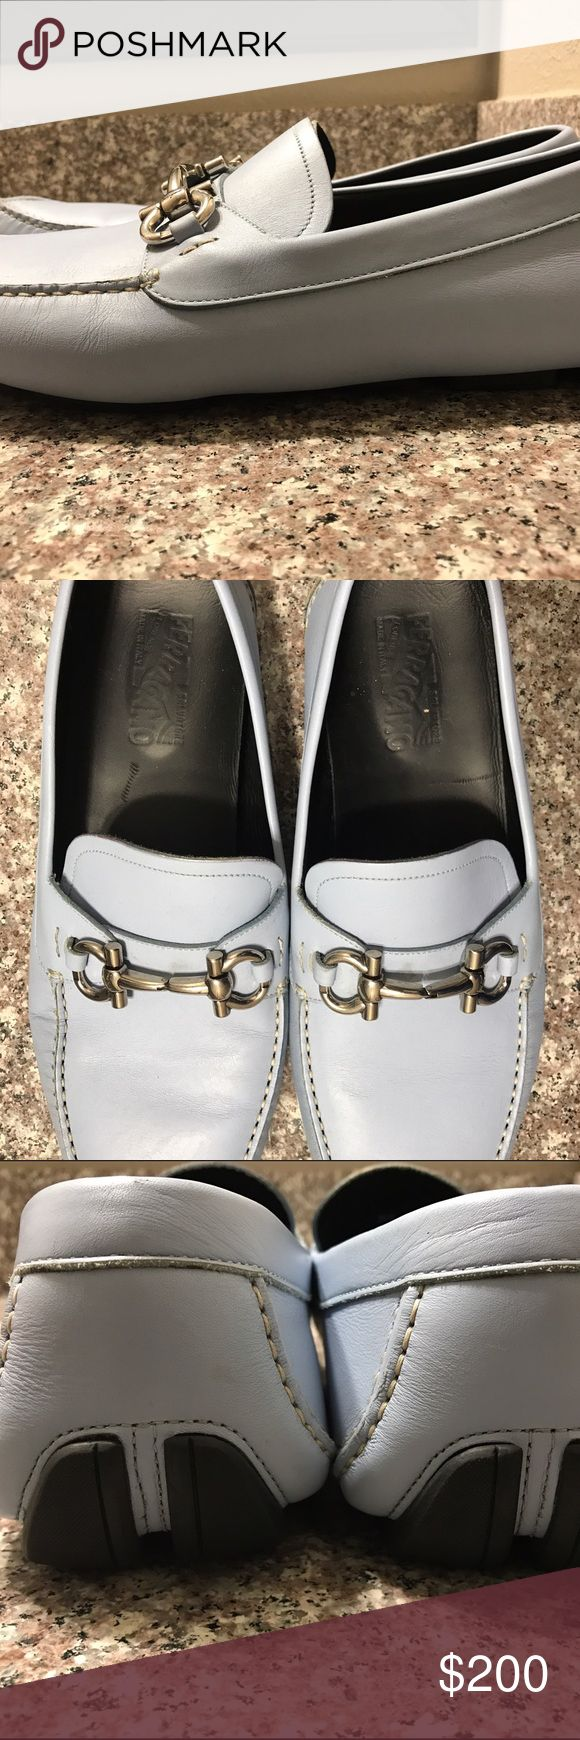 Men's Salvatore Ferragamo Loafers Size 13 Men's Salvatore Ferragamo Loafers   Size 13  Powder Blue  Worn a number of times   Good Condition  No Box  Wiped down before shipping  Shipping (2-3 days) Salvatore Ferragamo Shoes Loafers & Slip-Ons